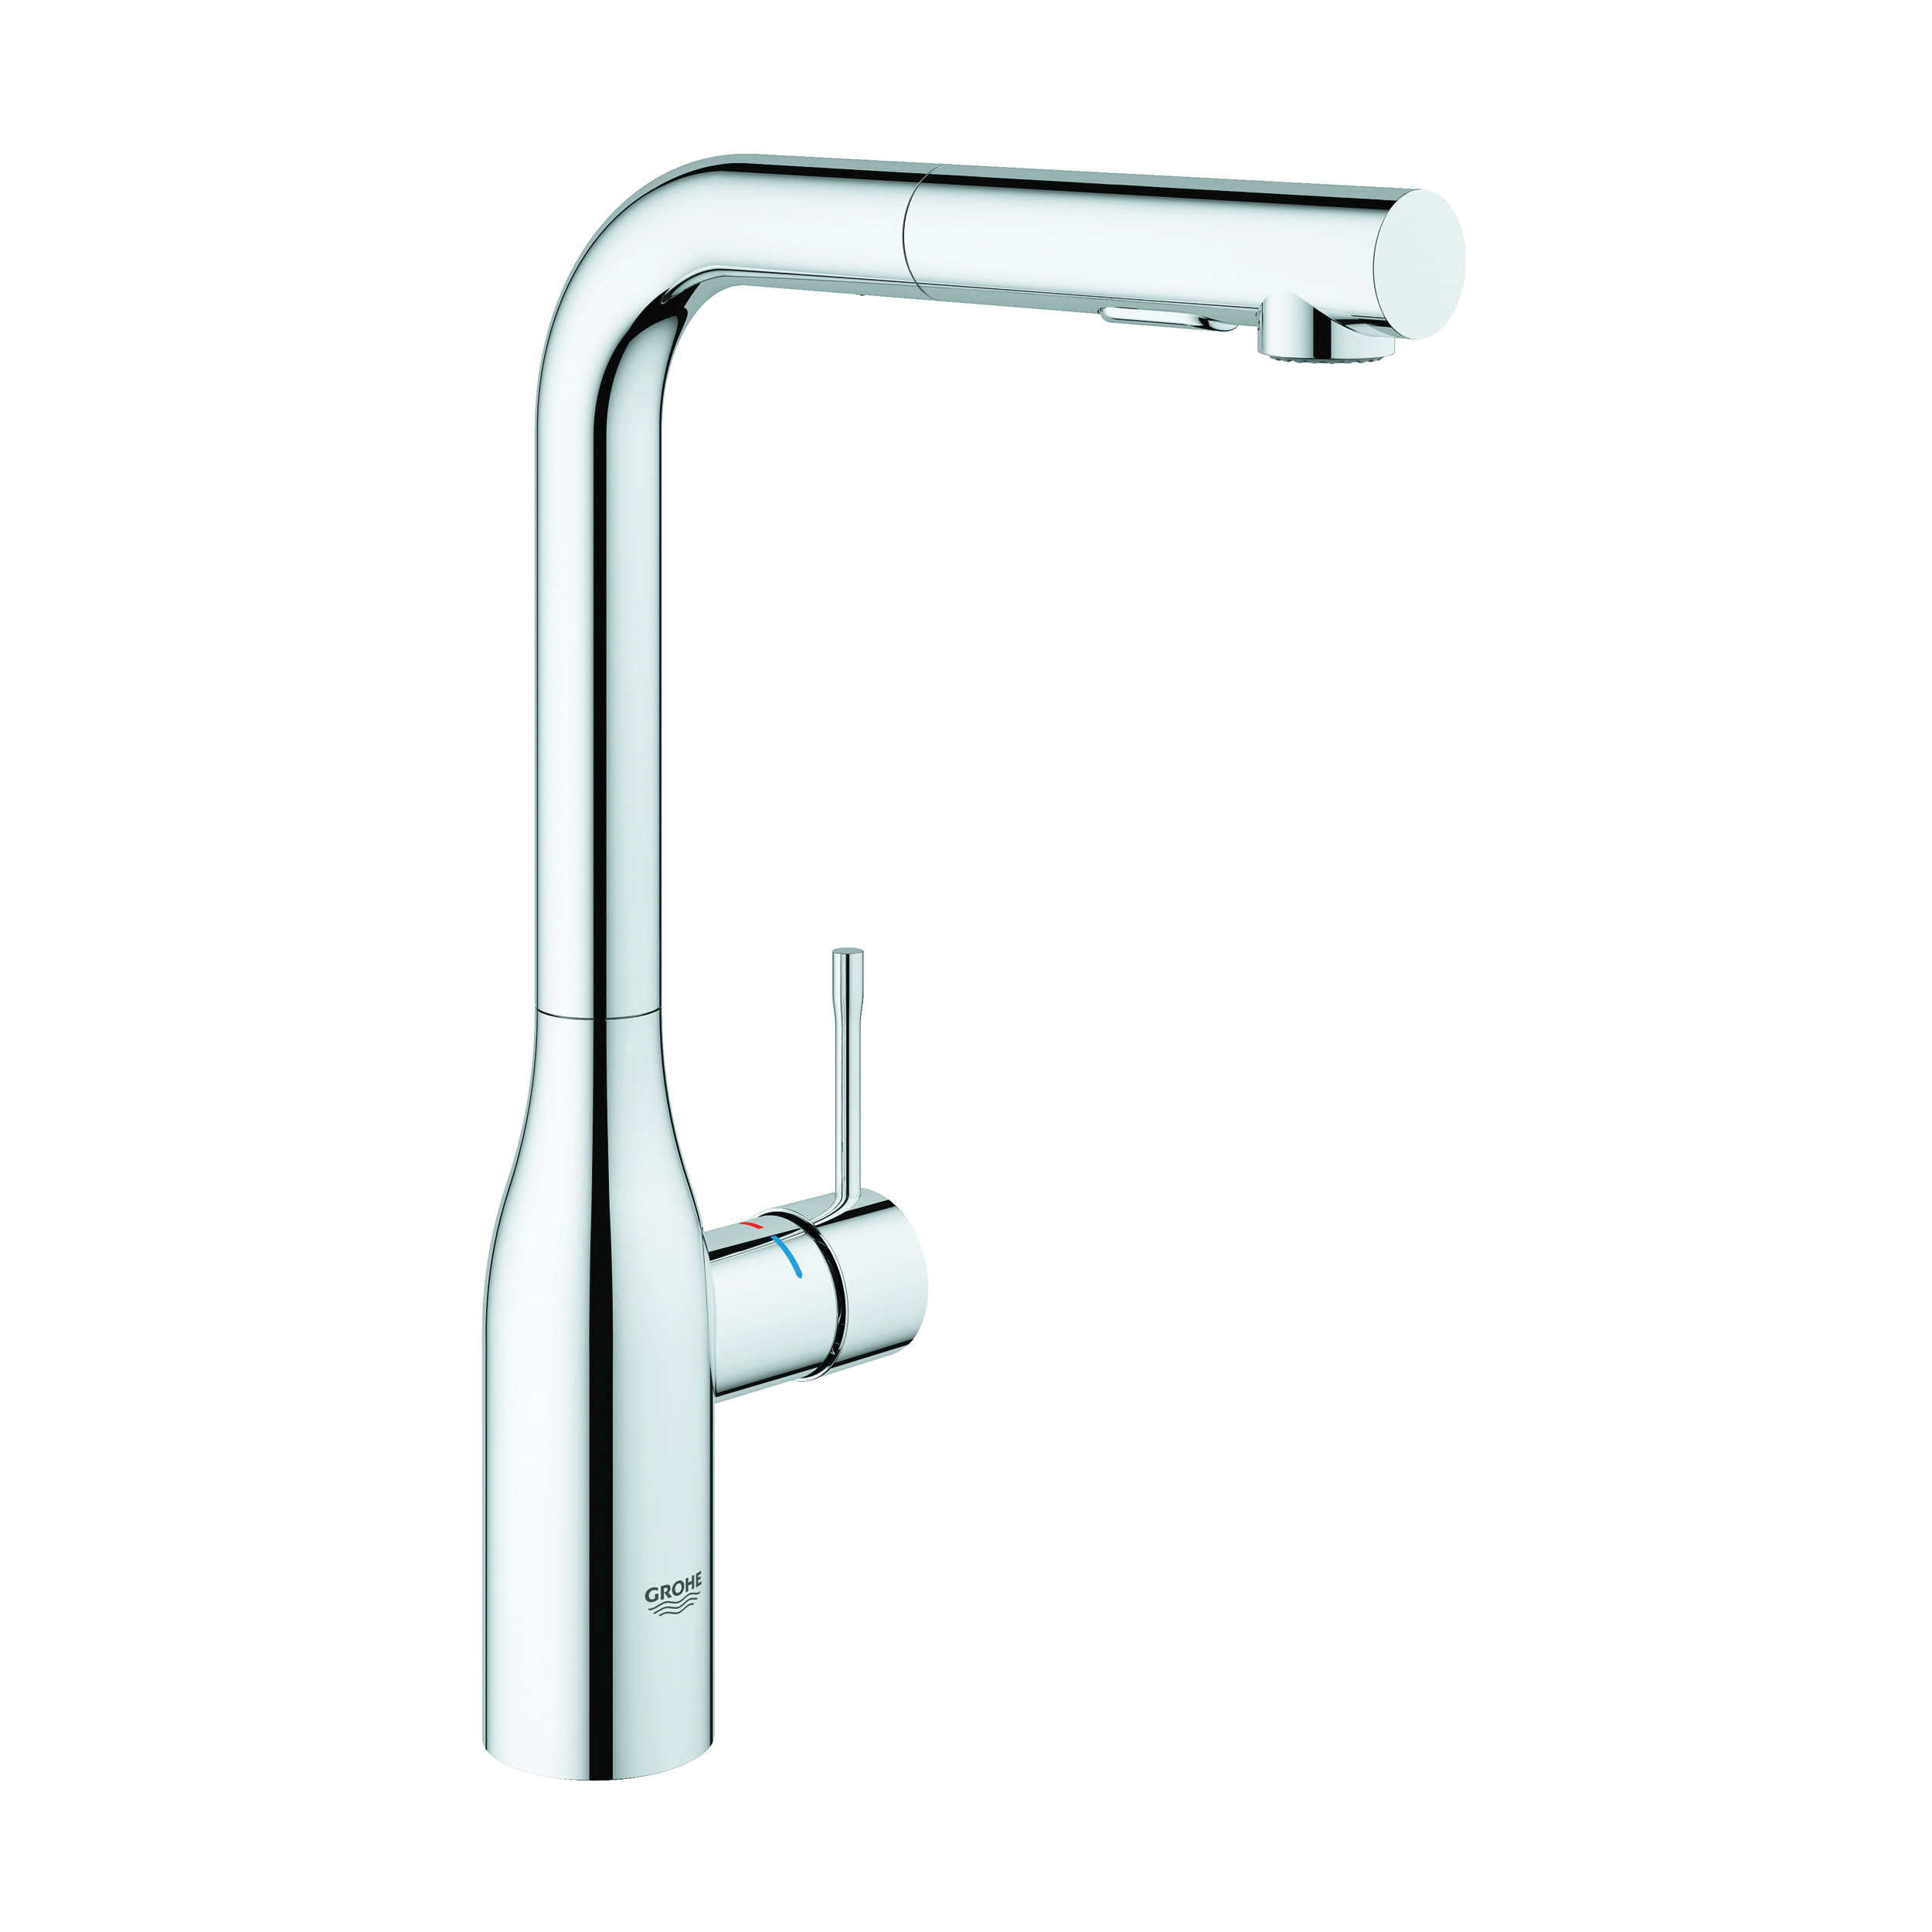 Consolidated Supply Co. | GROHE 30271000 Essence™ New Kitchen Faucet ...